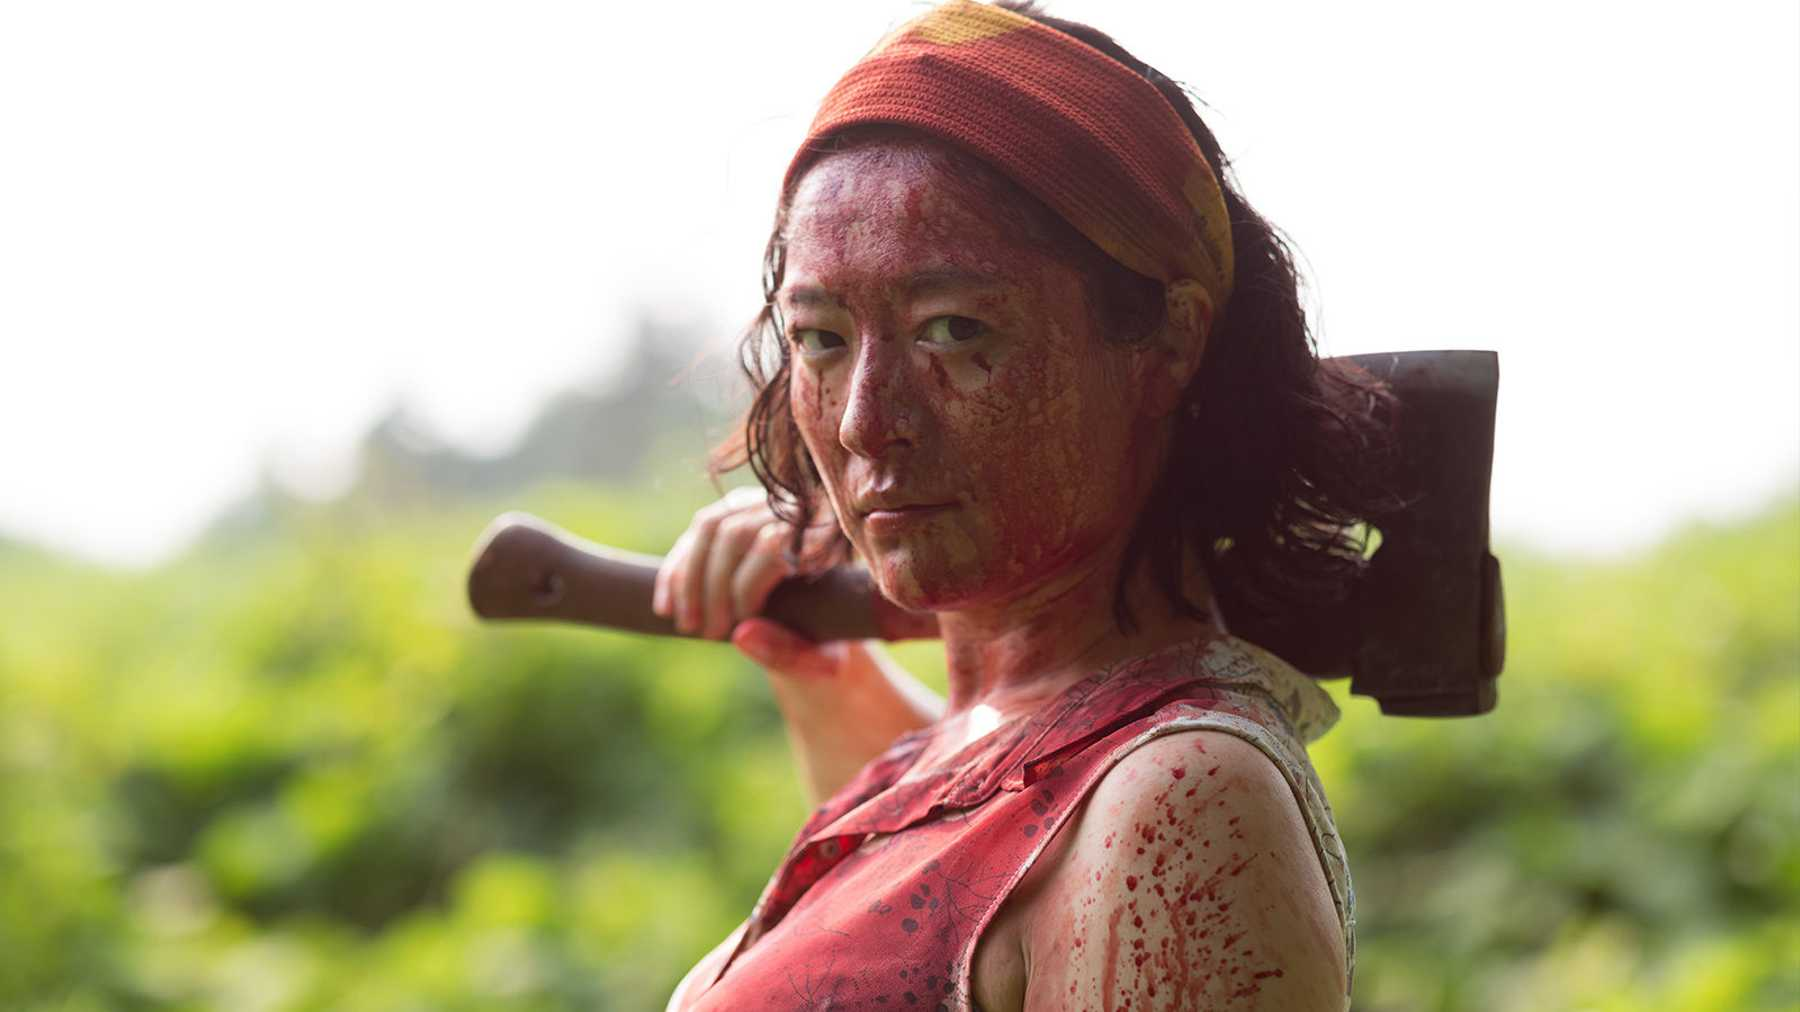 Harumi (Harumi Shuhama) is a standout of a brilliant ensemble cast in One Cut of the Dead.